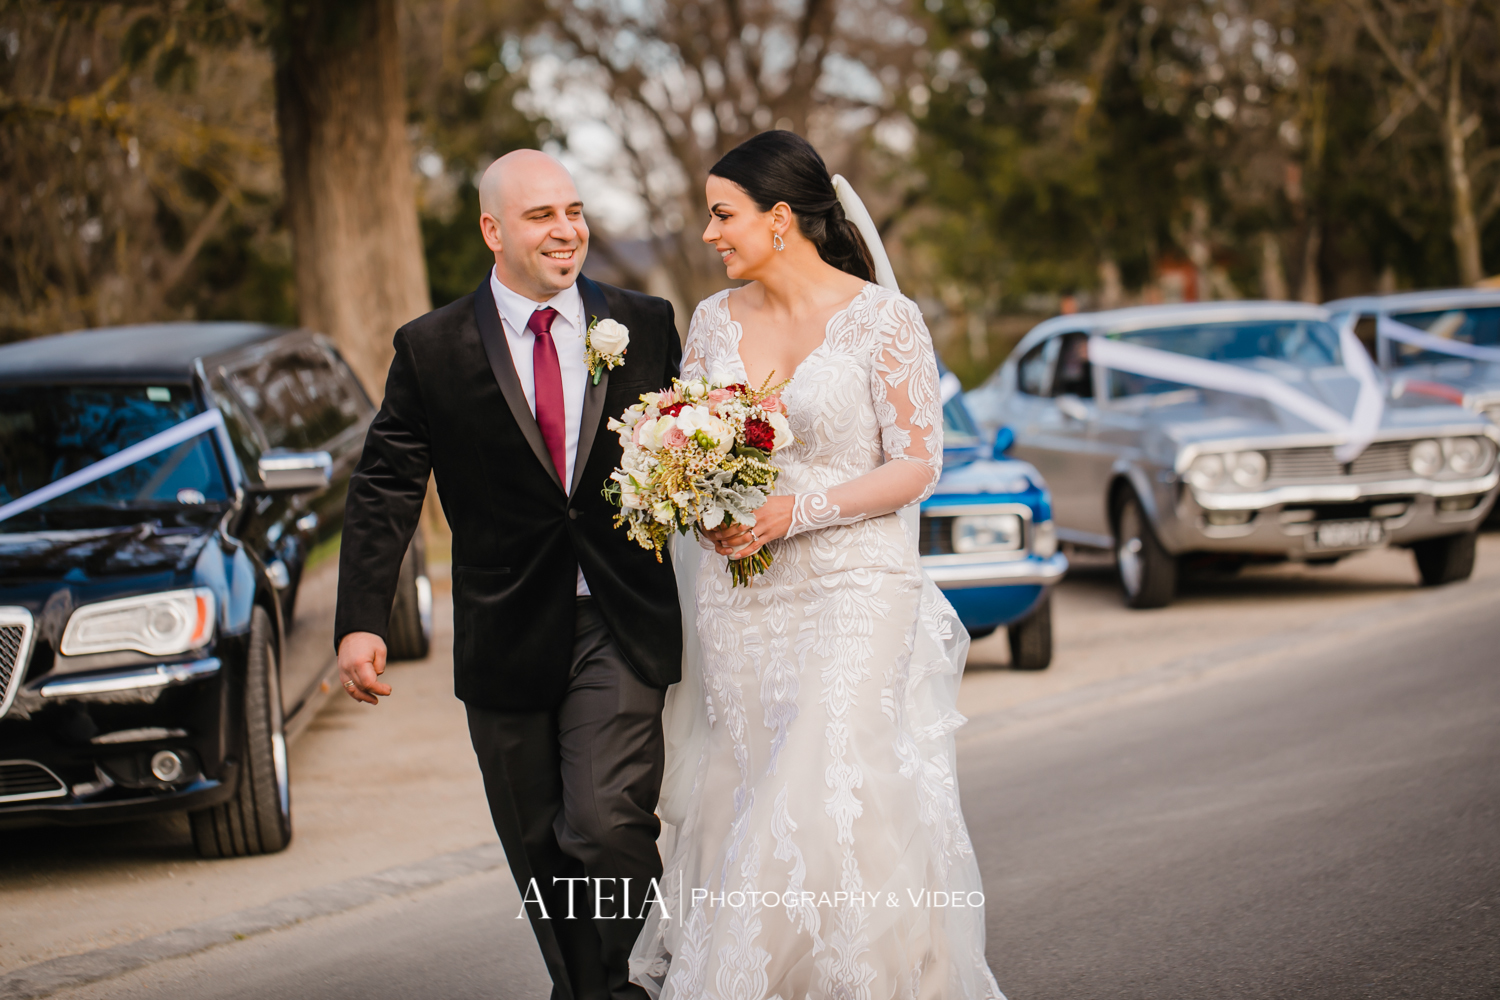 , Vogue Ballroom in Melbourne Wedding Photography by ATEIA